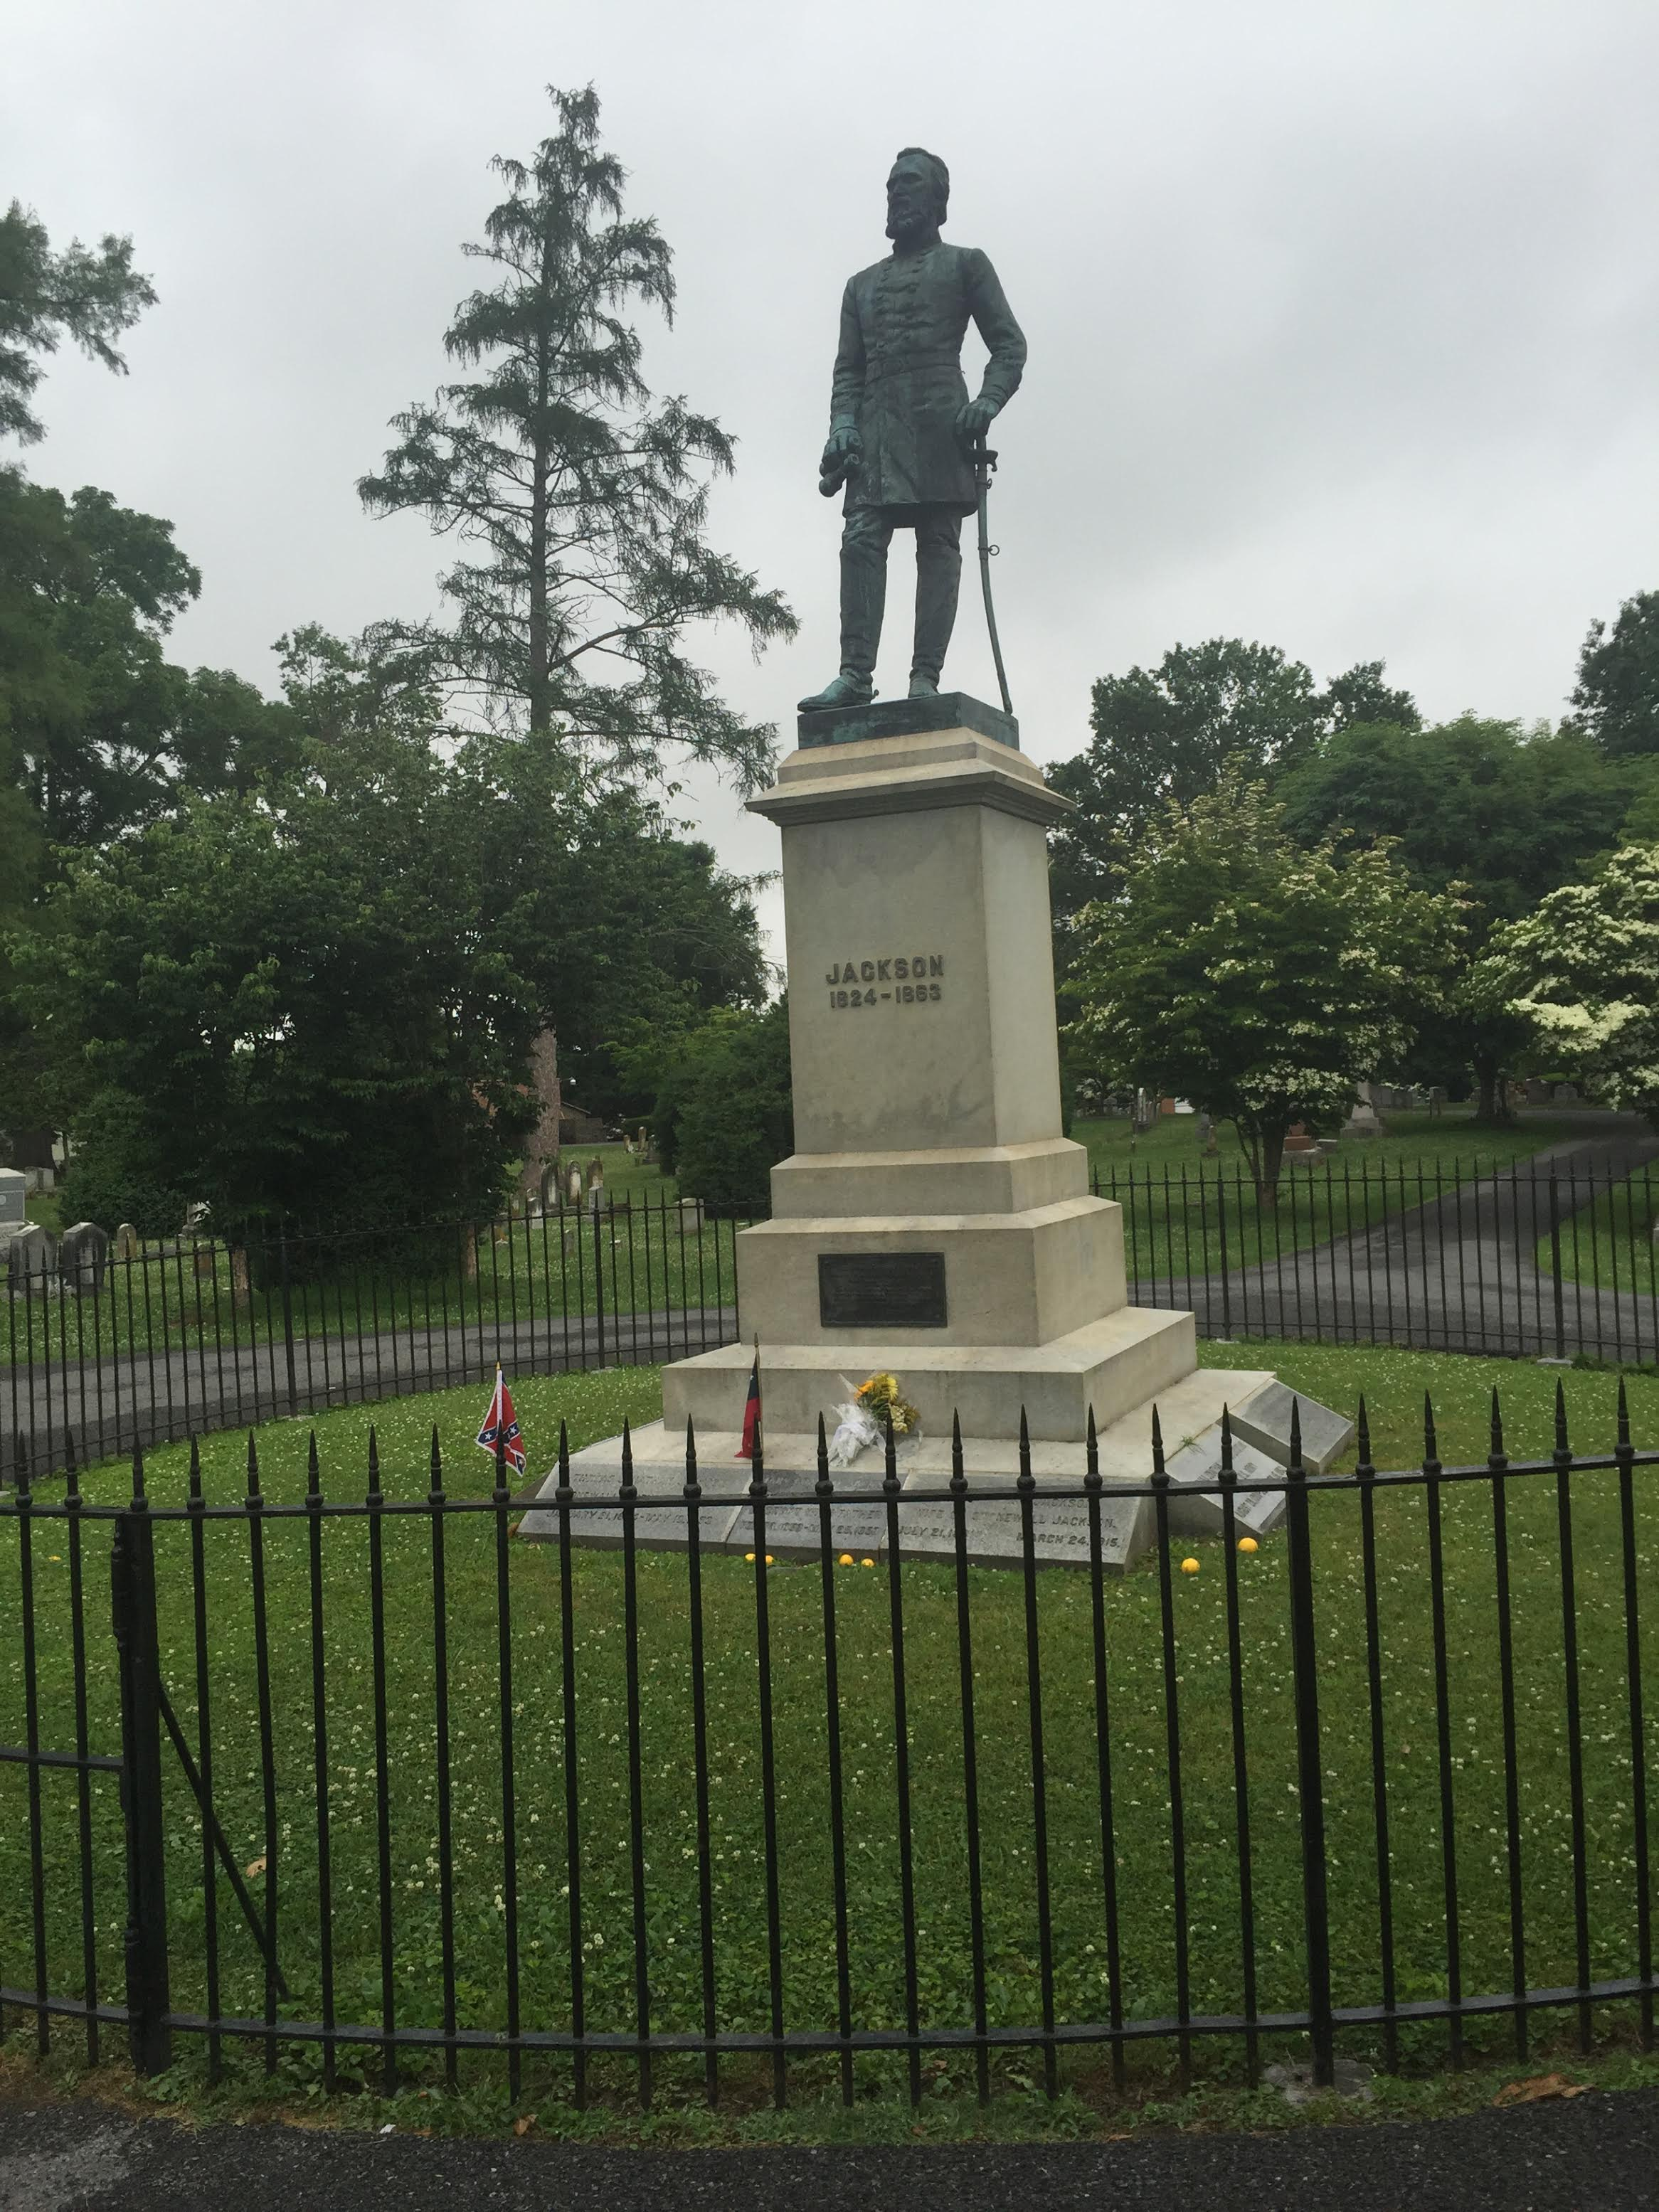 Stonewall Jackson's grave in Lexington Virginia. He served as a Confederate general under Robert E. Lee in the American Civil War. His ancestors came from County Armagh. (Photo courtesy of the author)